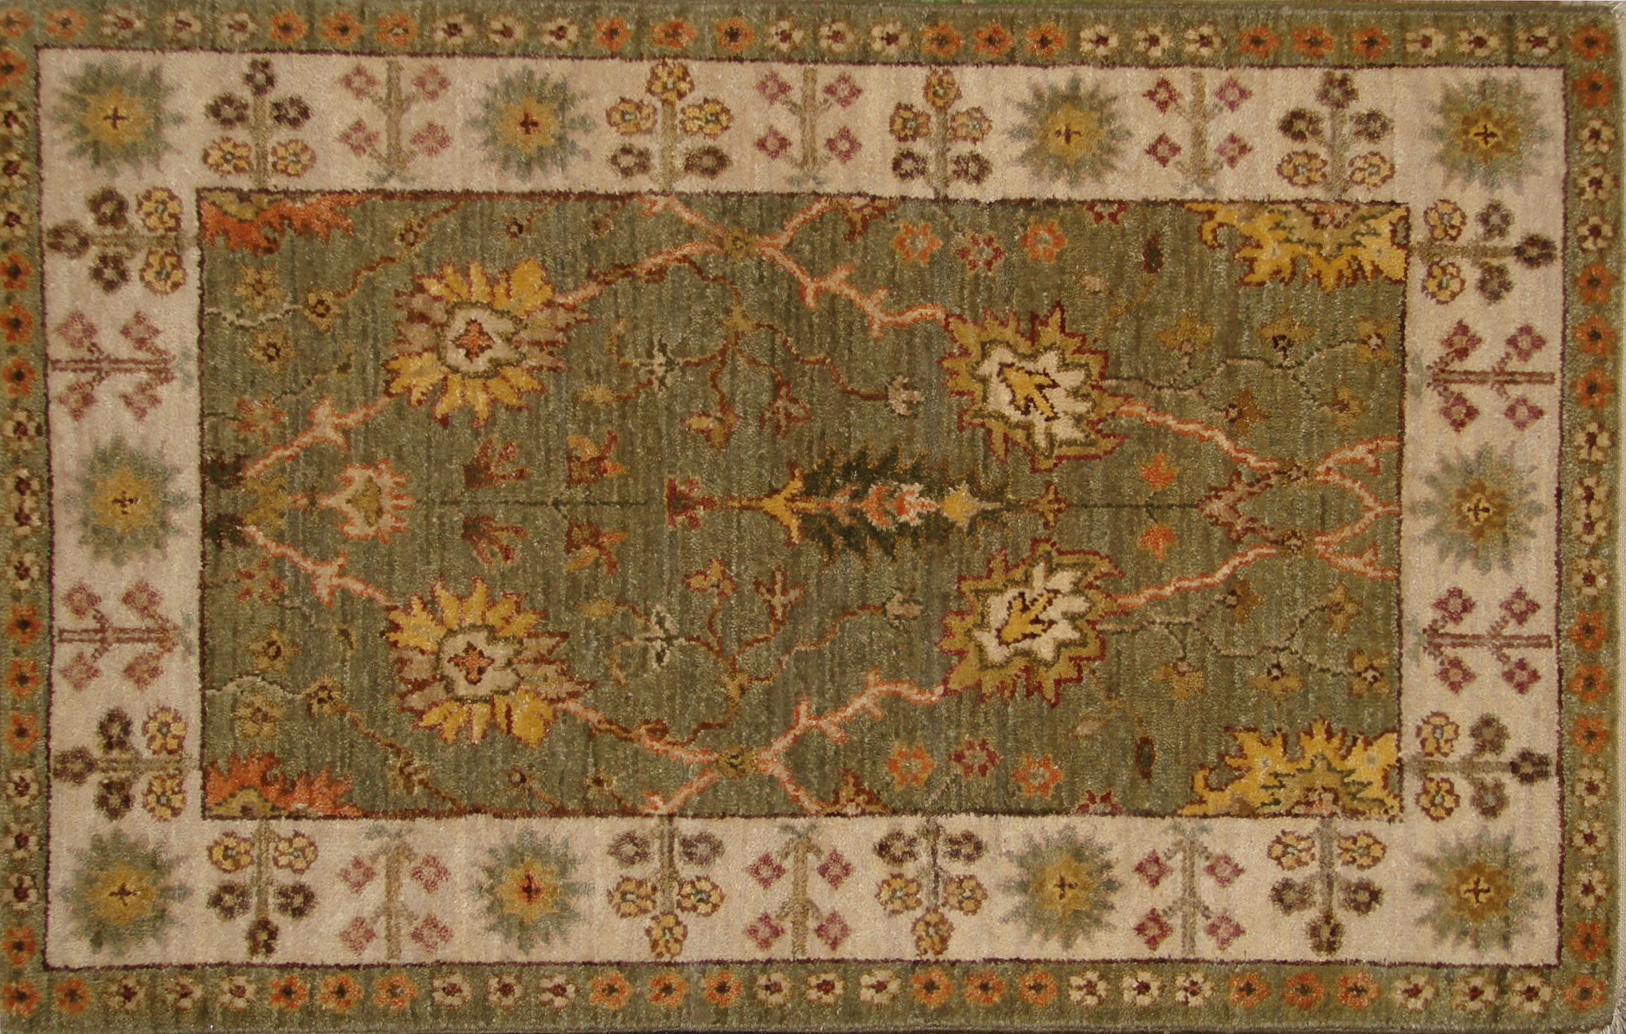 2X3 Traditional Hand Knotted Wool Area Rug - MR20754